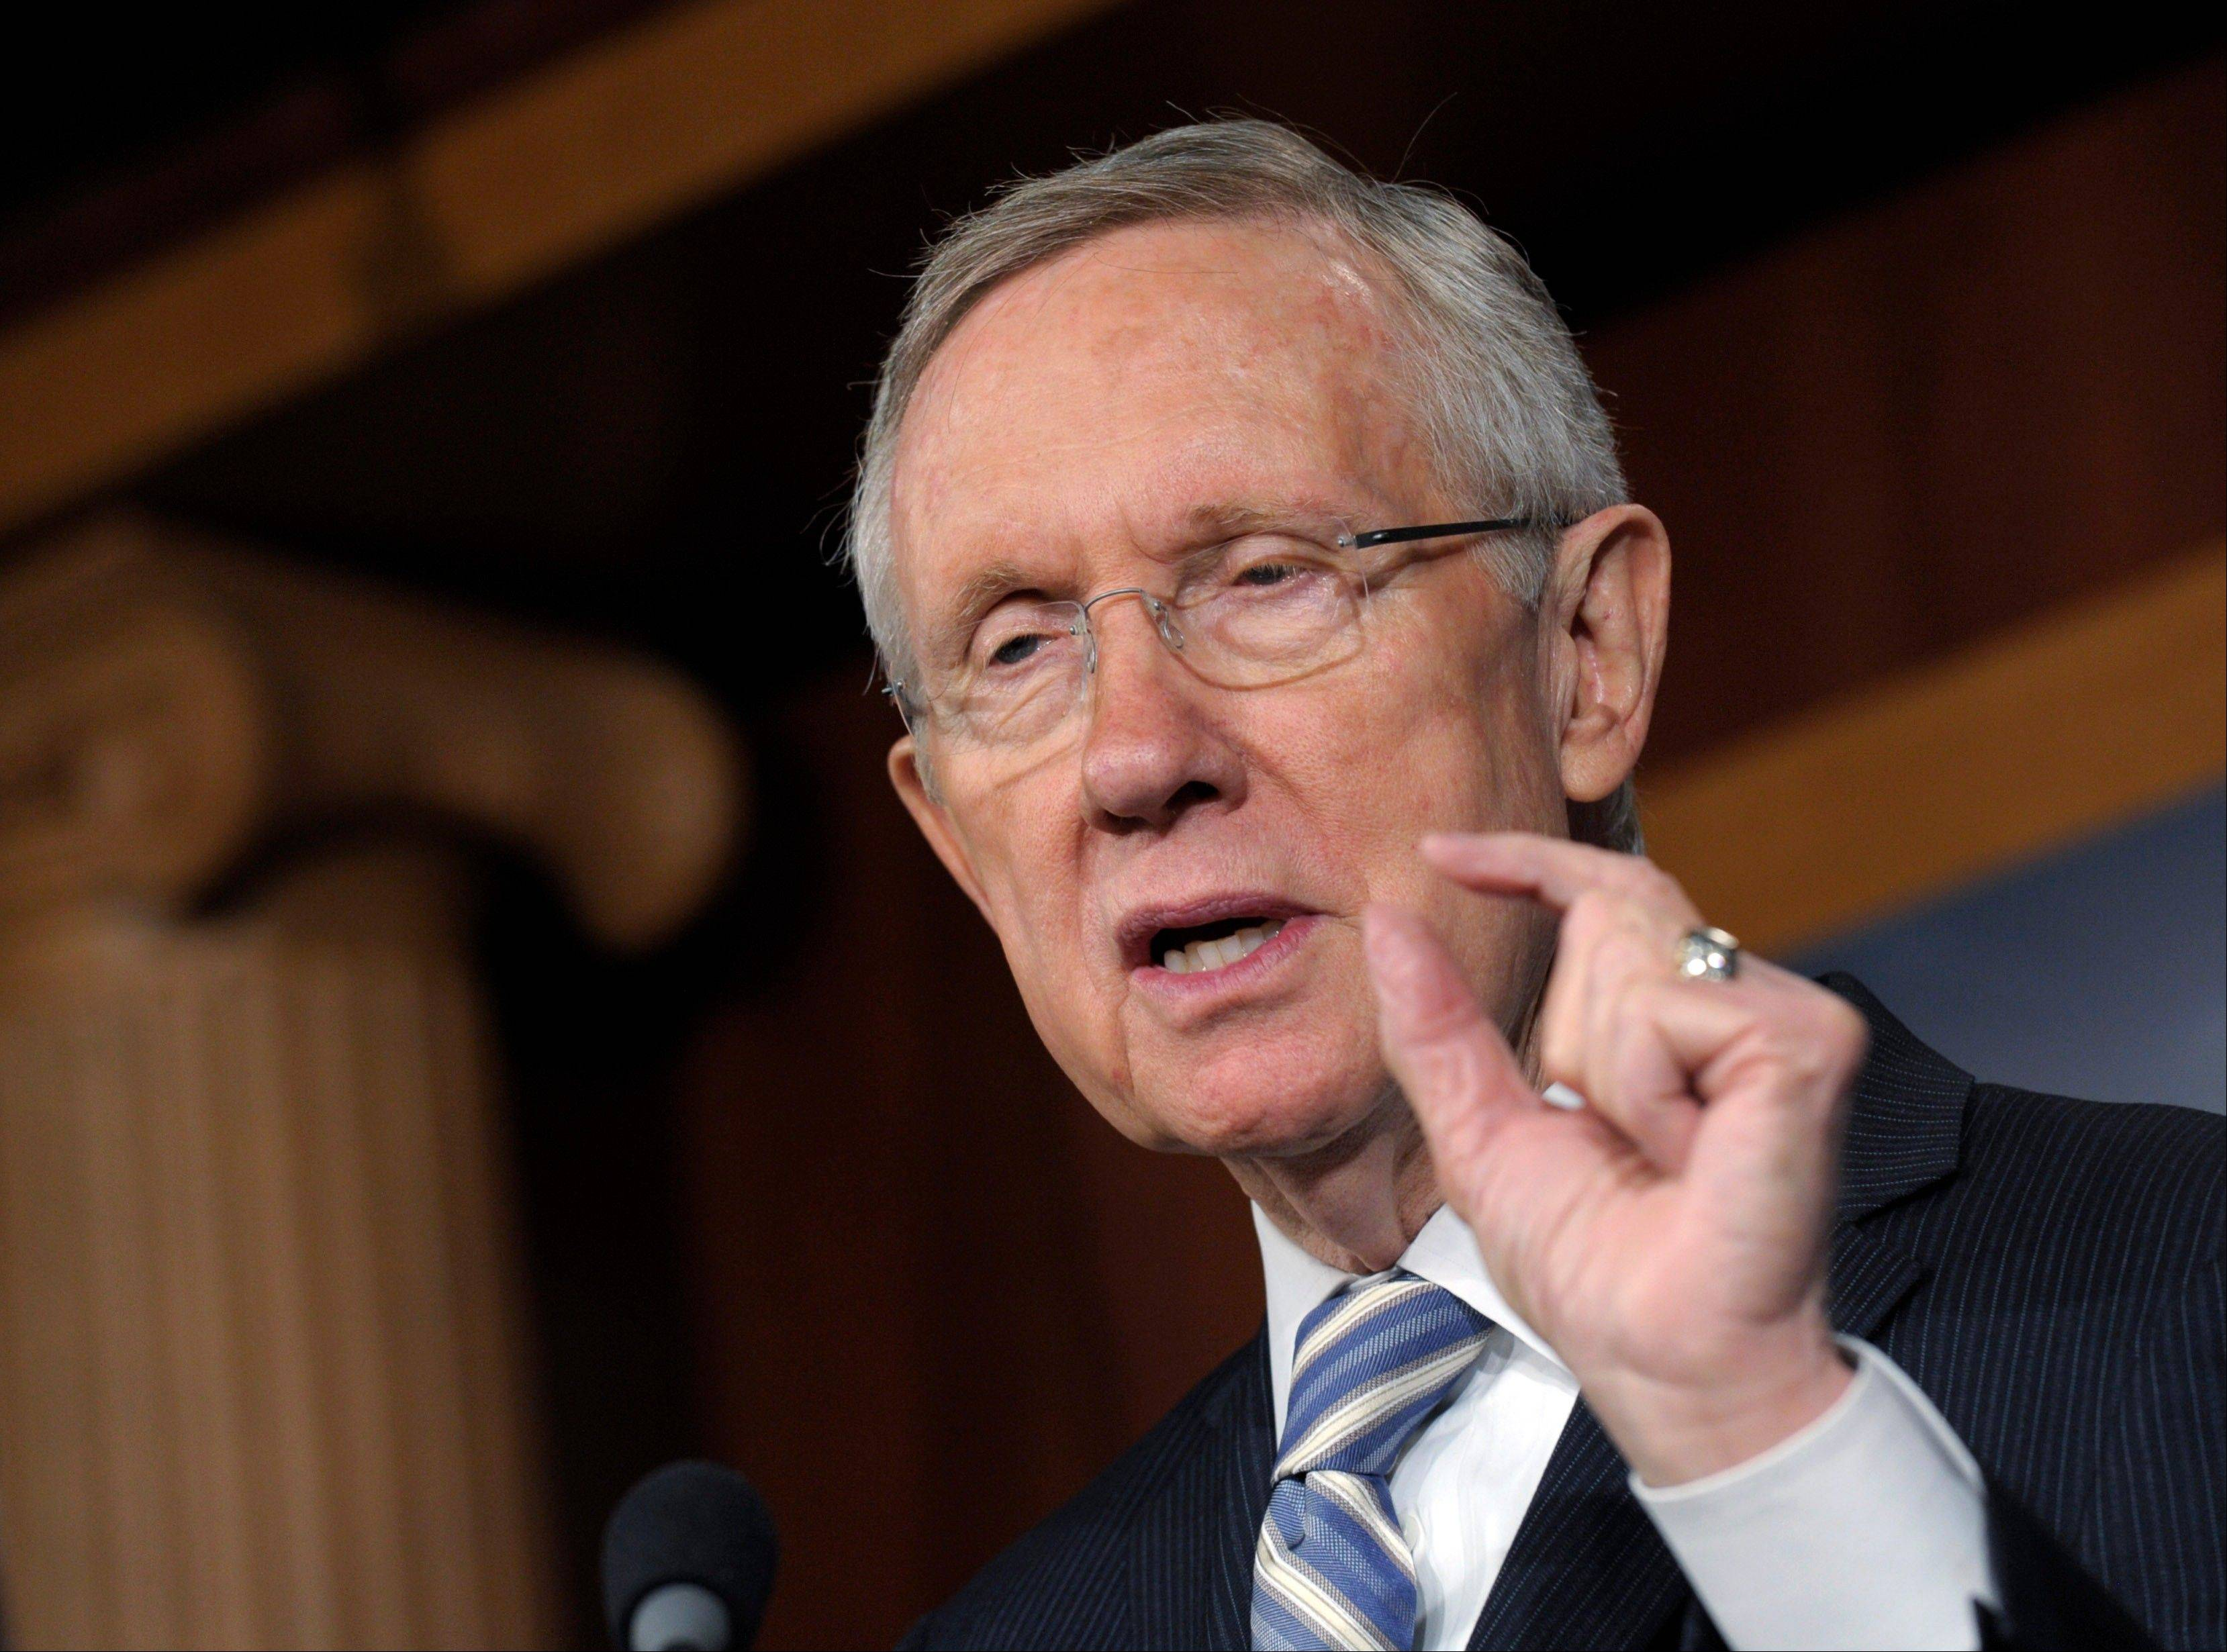 Senate Majority Leader Harry Reid believes the White House and Congress can avoid the fiscal cliff that looms at the end of the year.